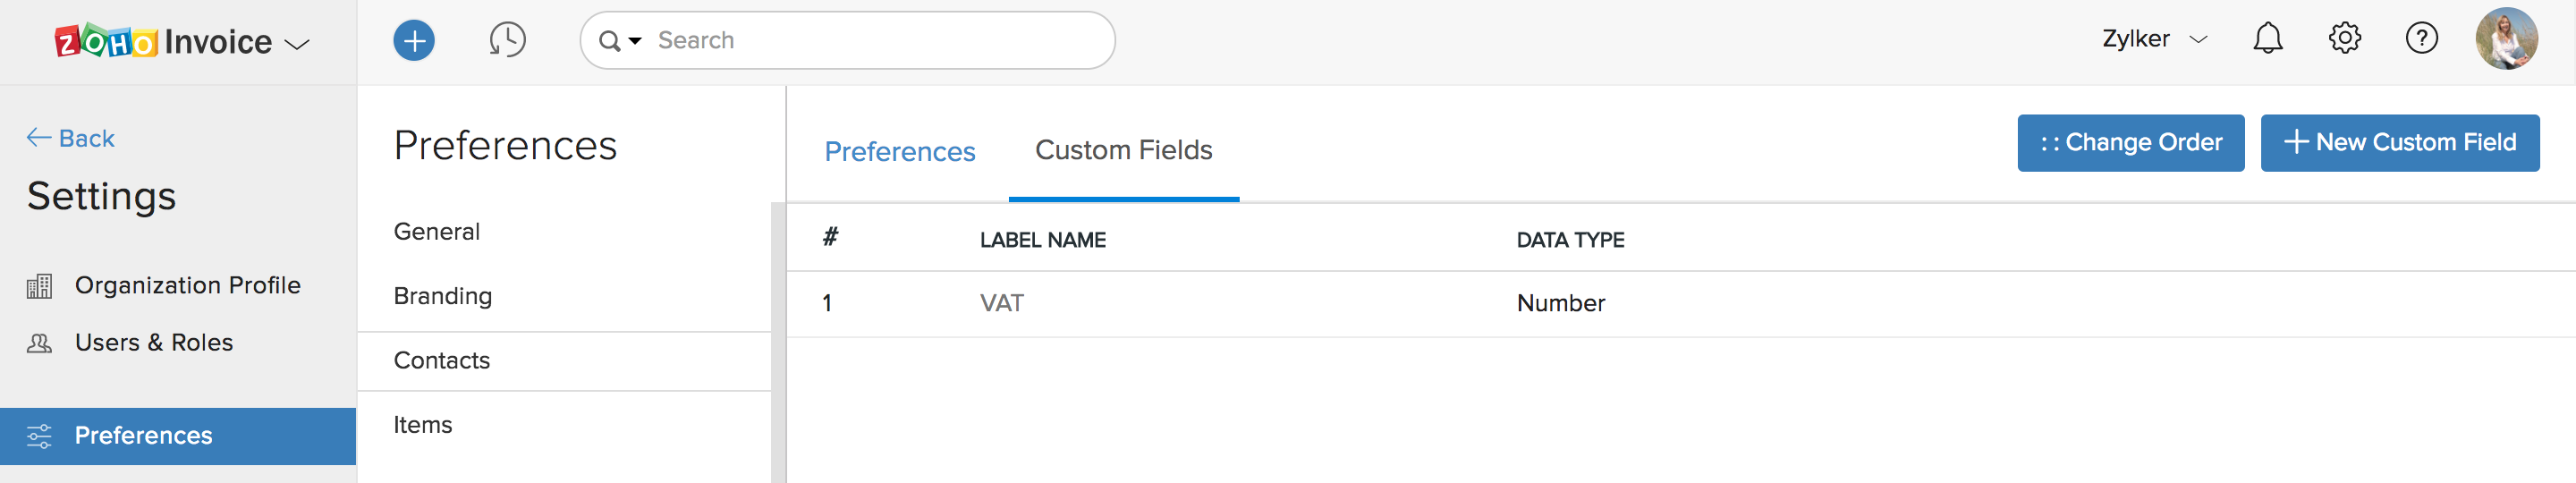 Custom Fields Tab